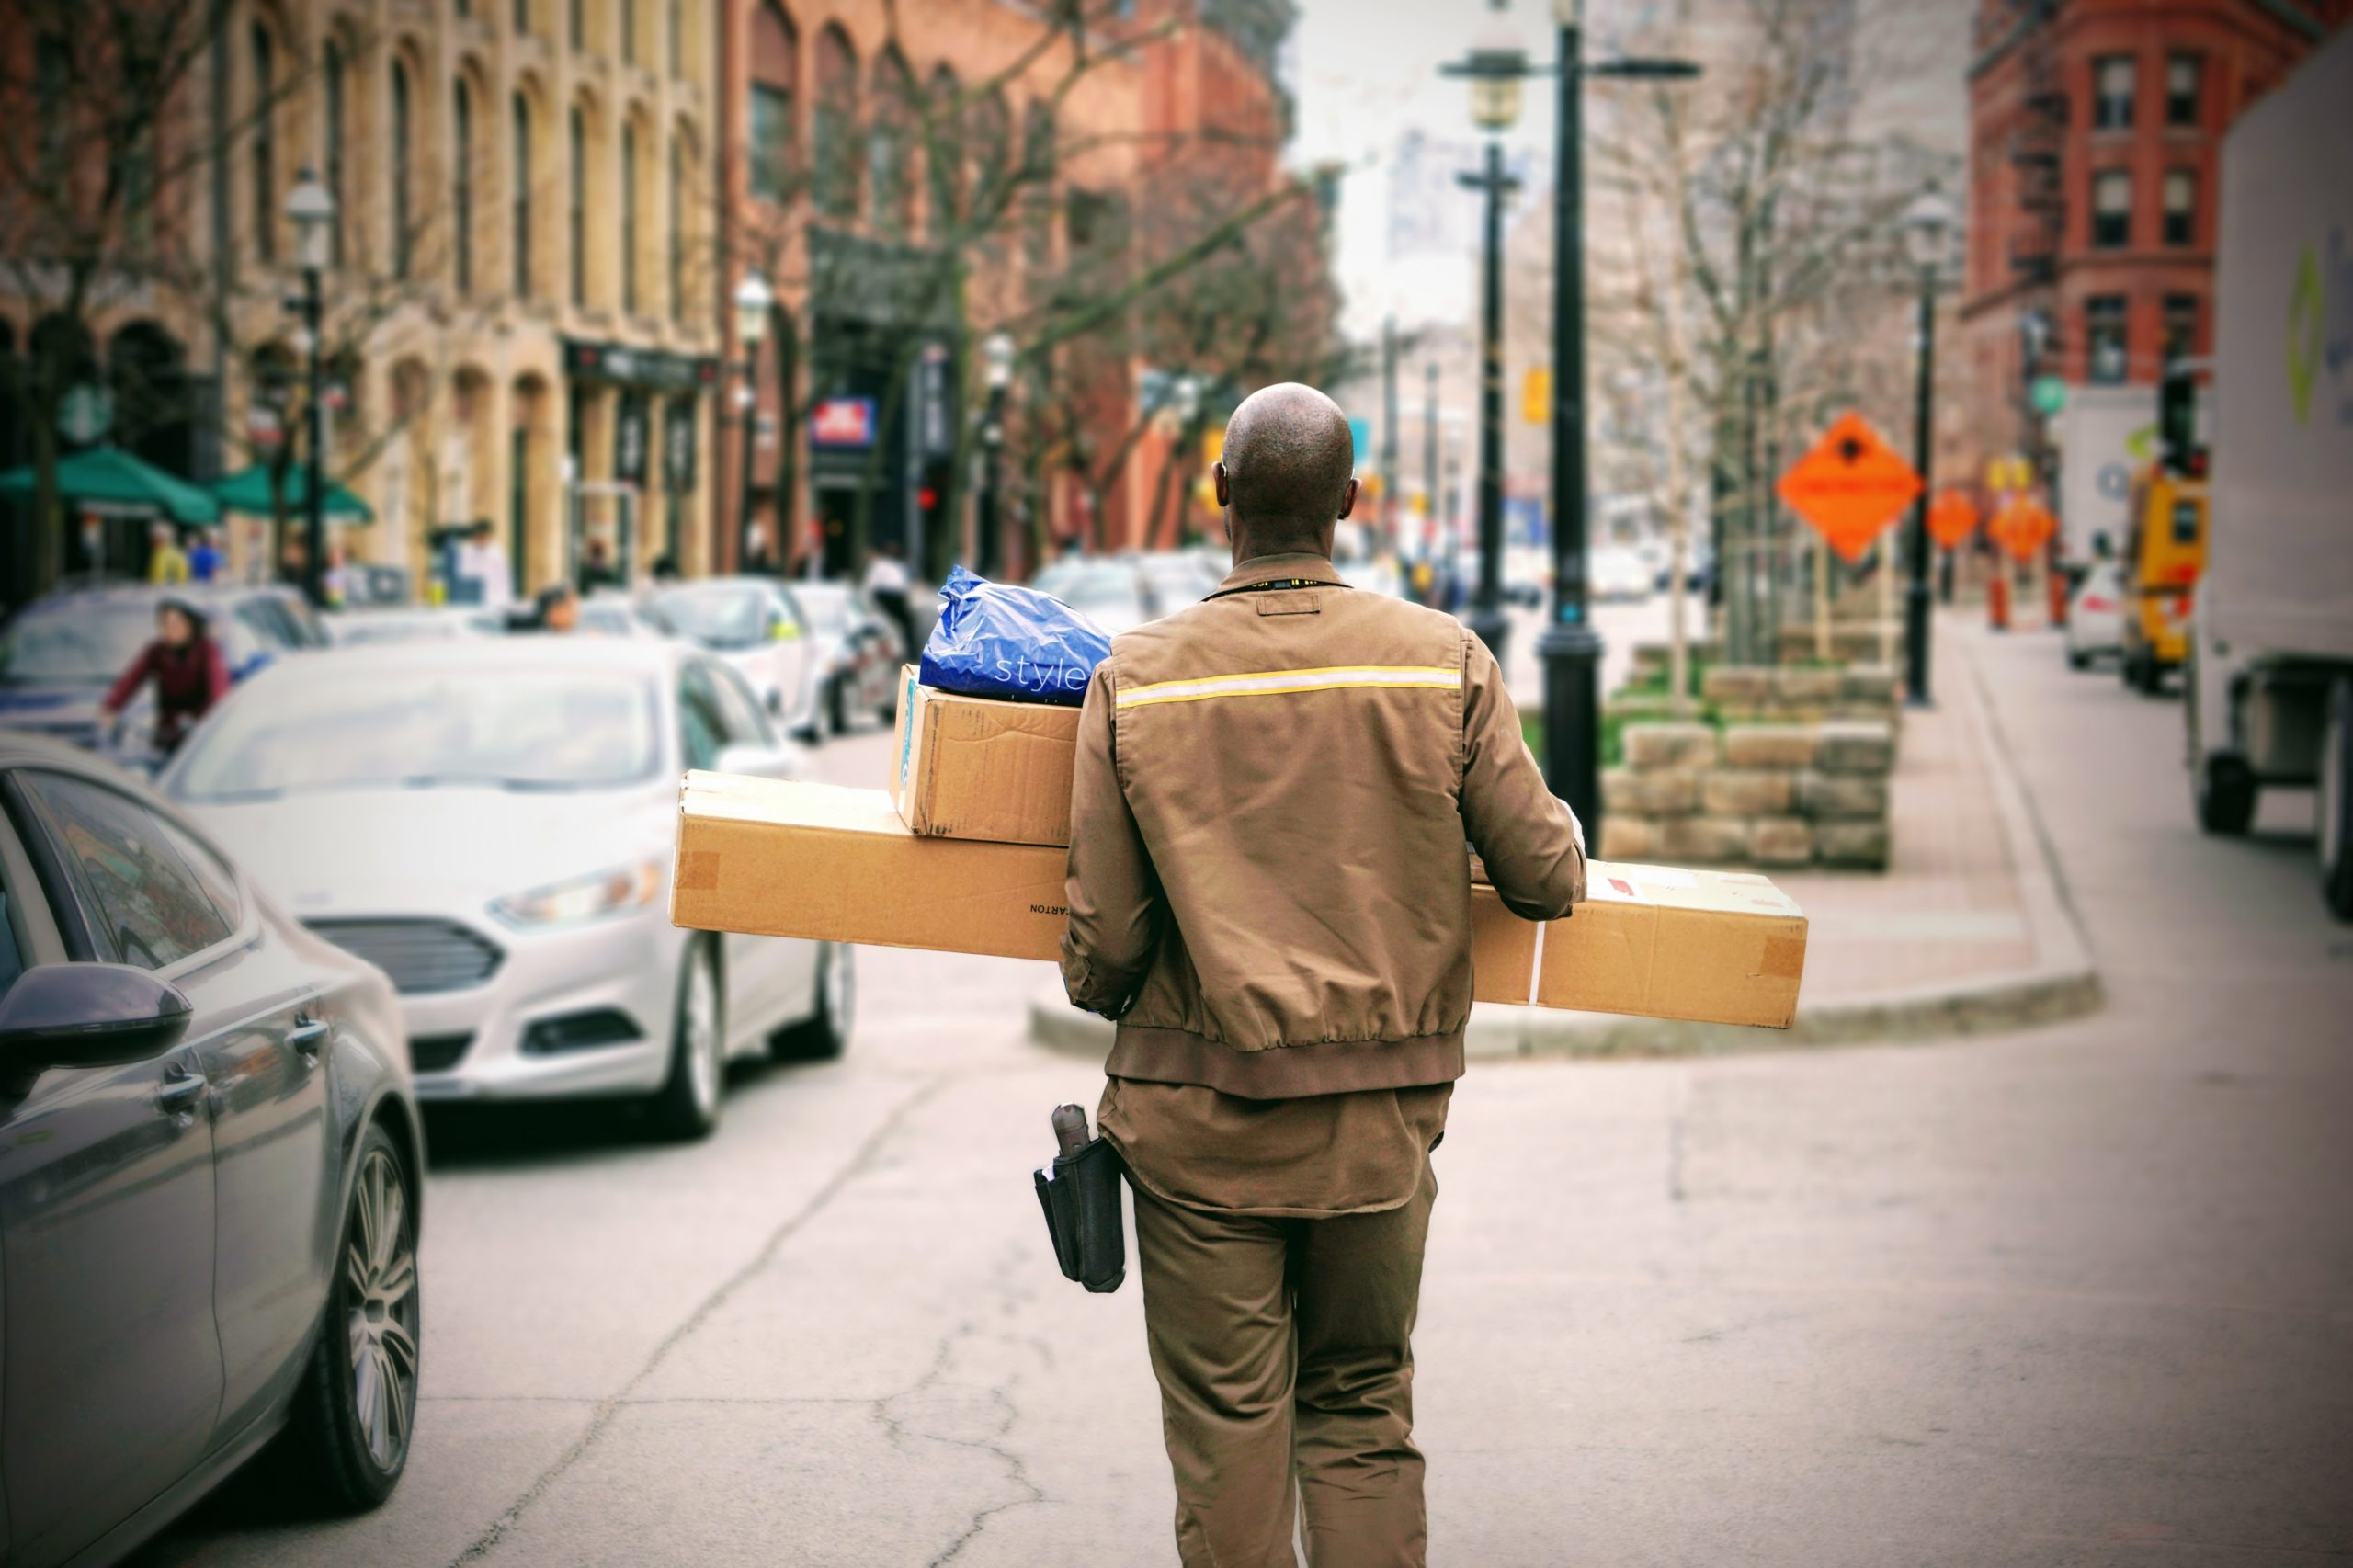 keep track of daily deliveries and shipments